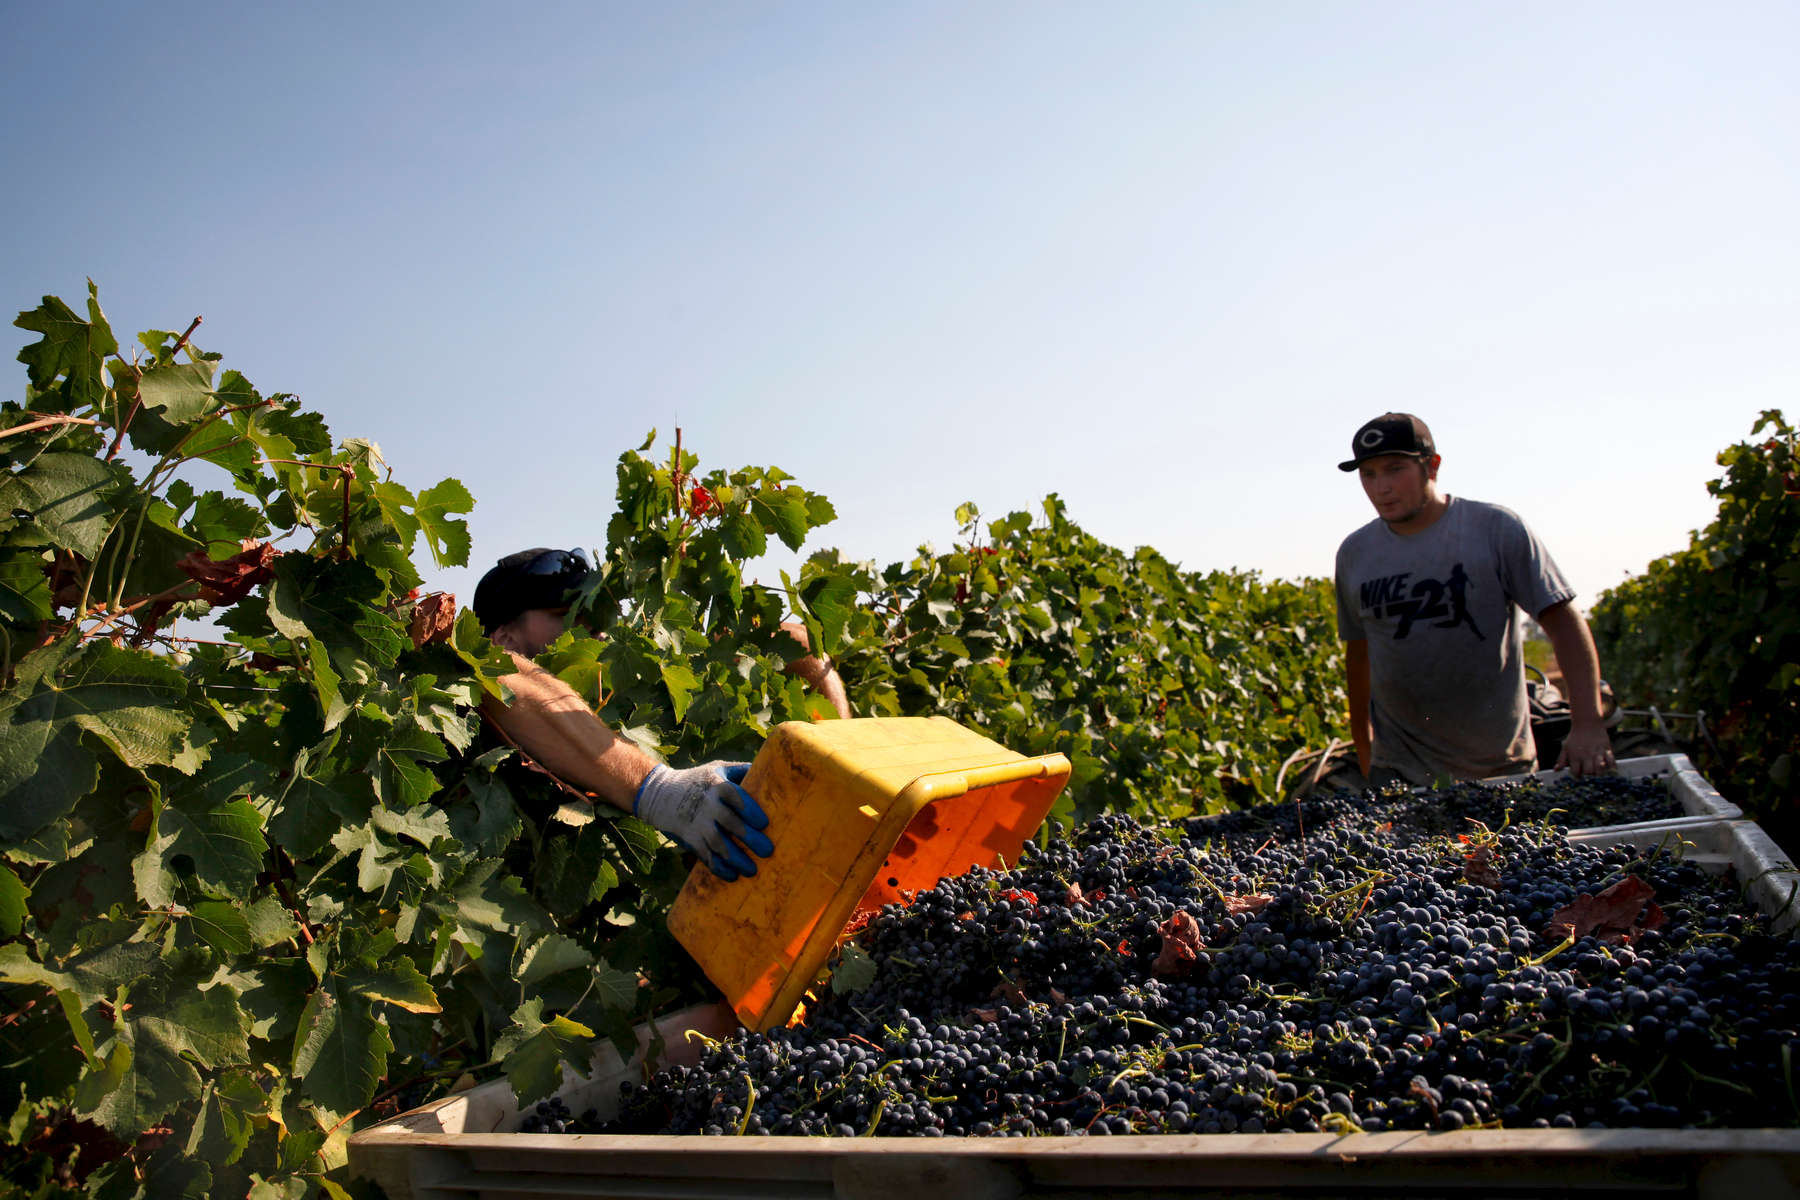 Workers harvest Syrah grapes at Borra Vineyards in Lodi, Calif., on Thursday, August 20, 2015. (Photo by Preston Gannaway © 2015)